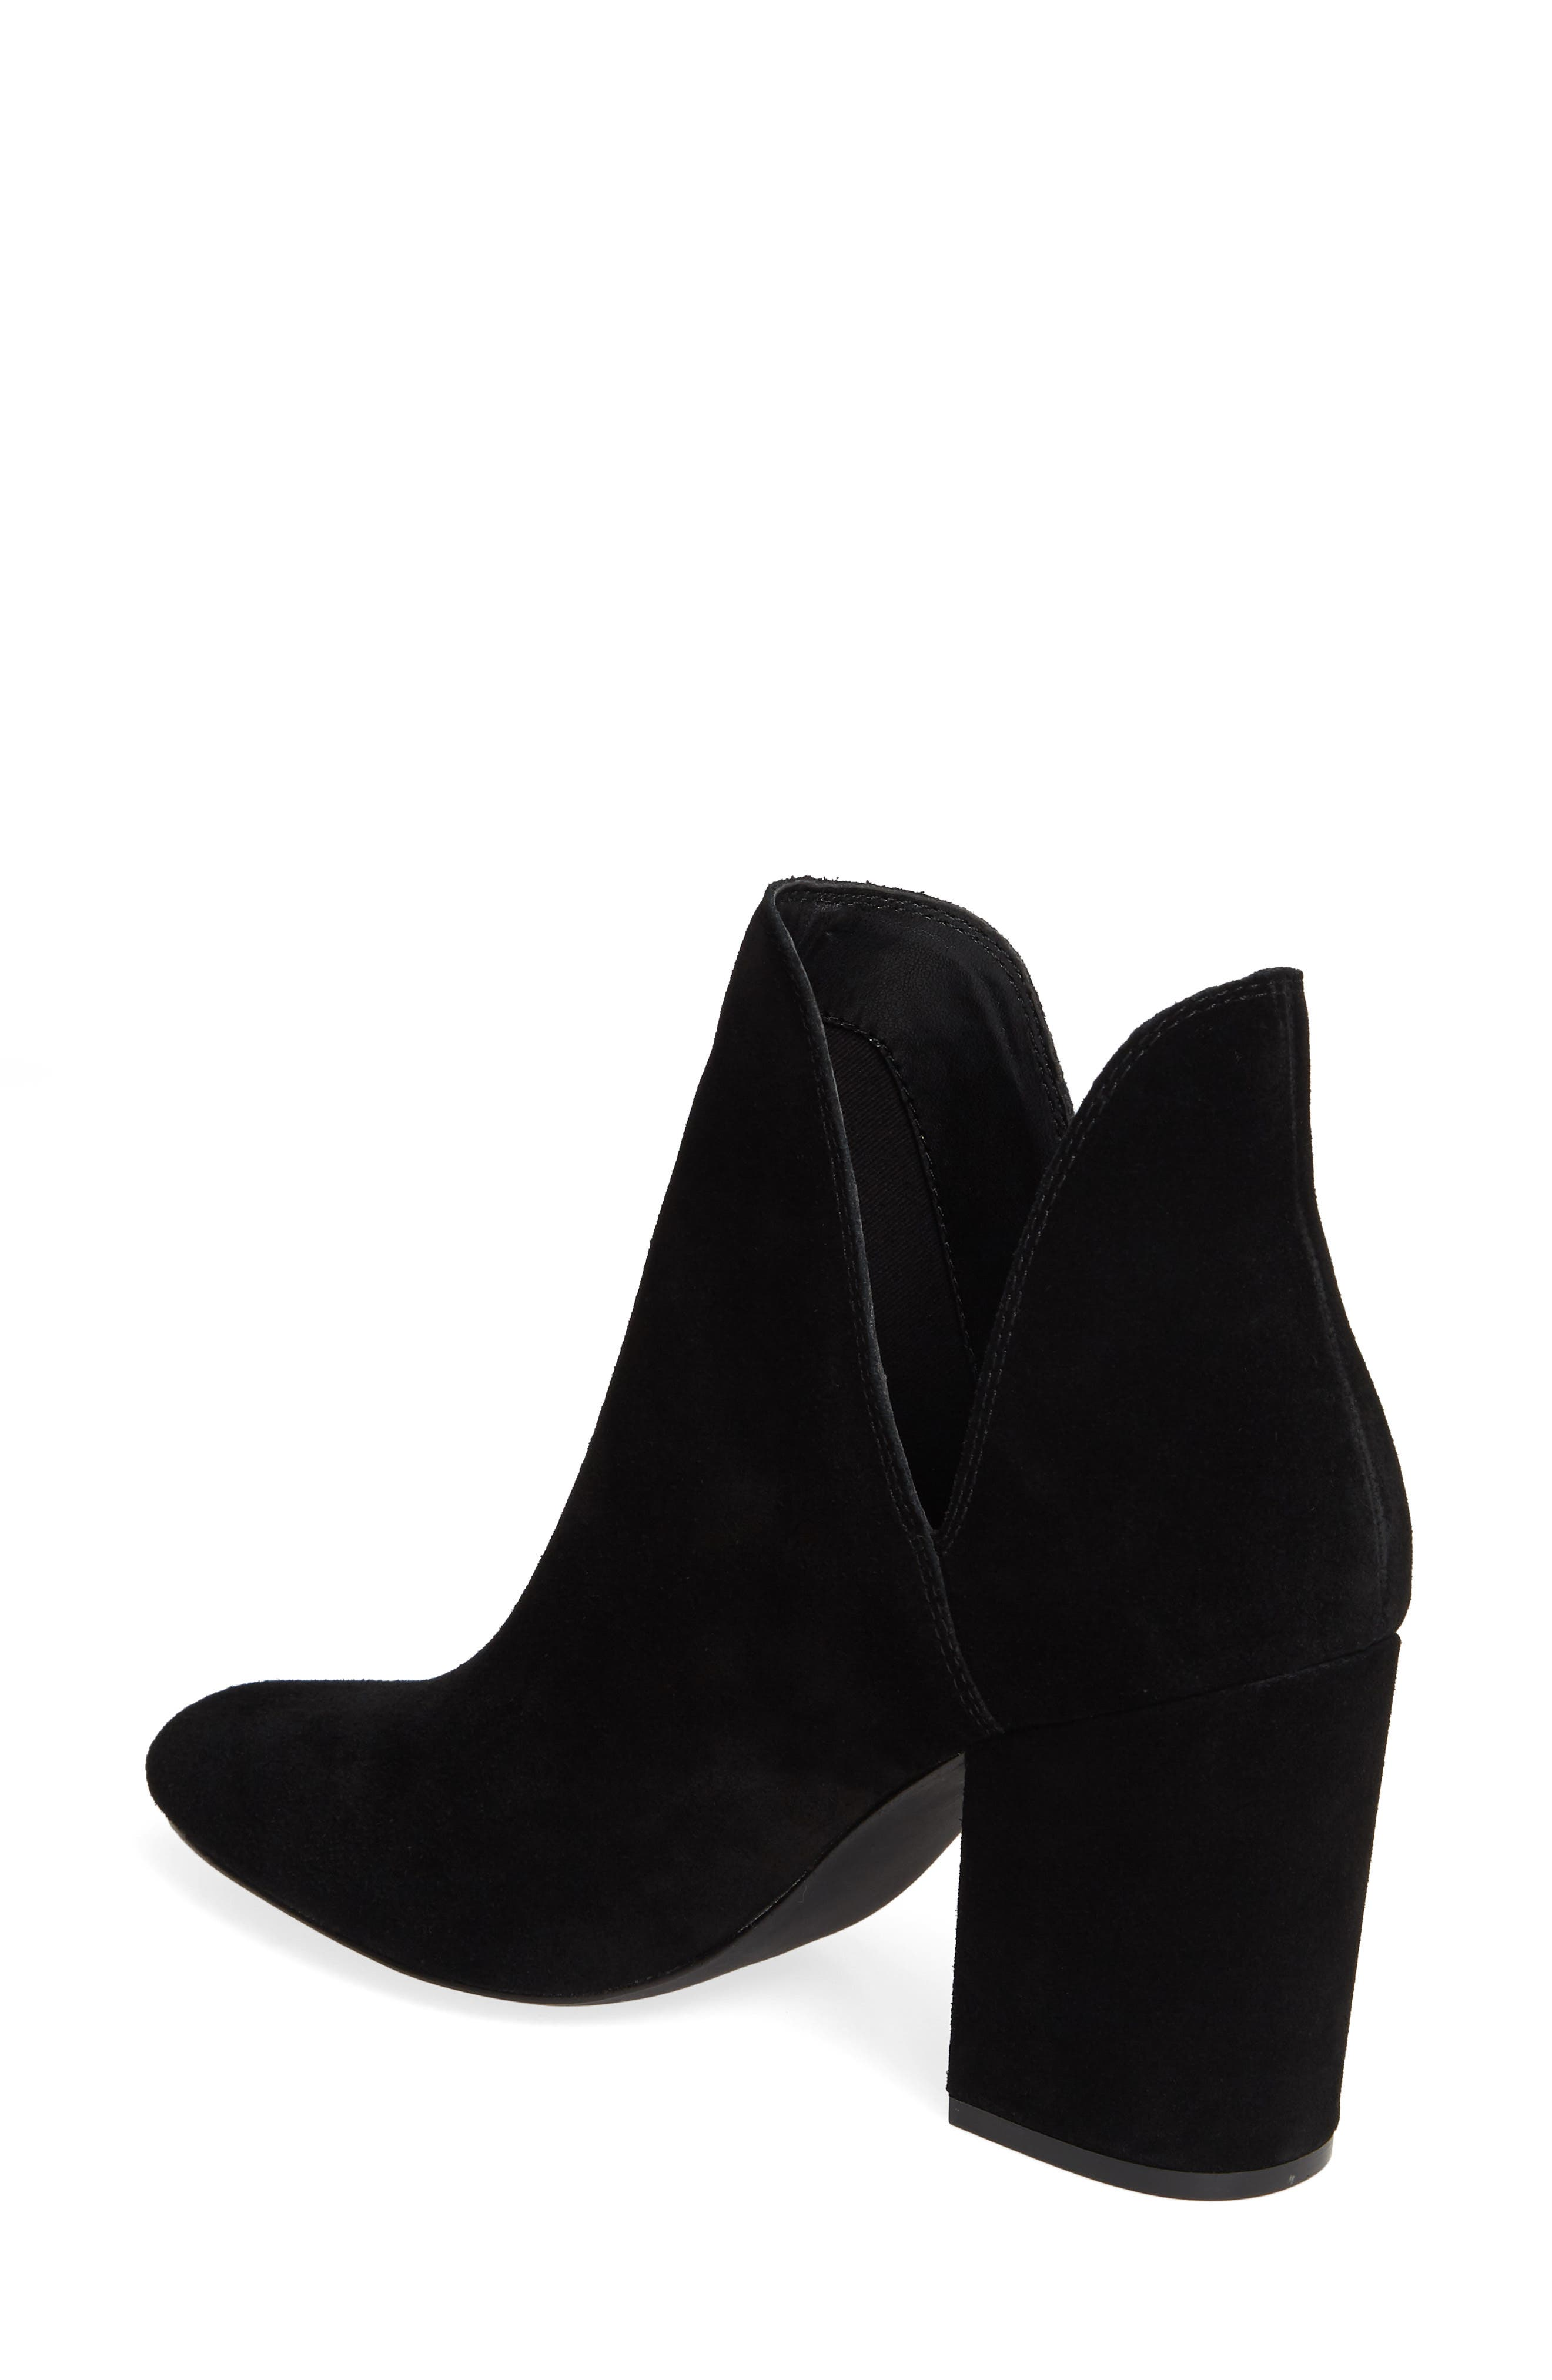 STEVE MADDEN, Rookie Bootie, Alternate thumbnail 2, color, BLACK SUEDE